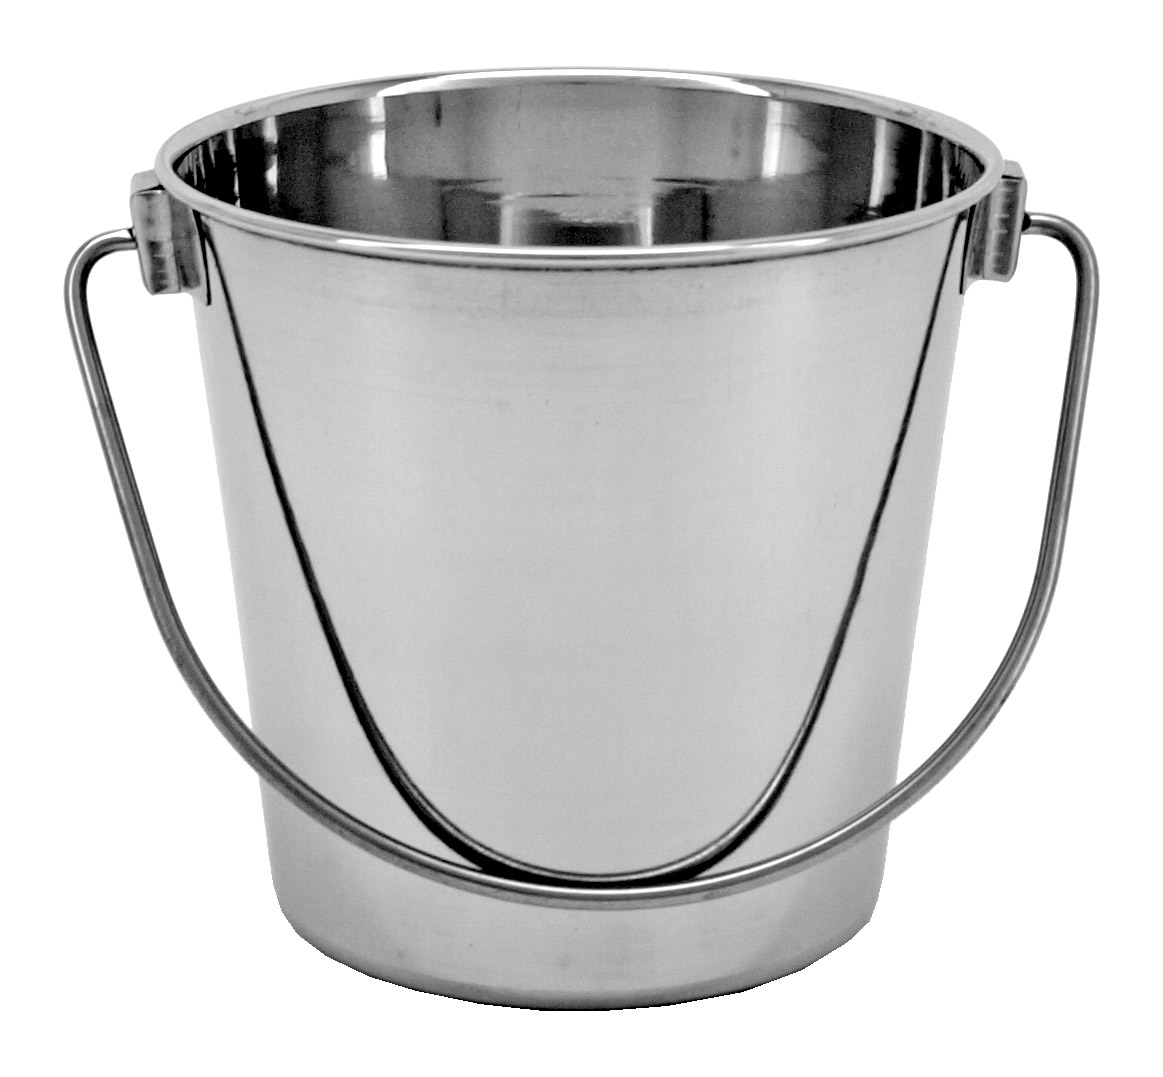 5 Gallon Stainless Steel Bucket Click To Enlarge